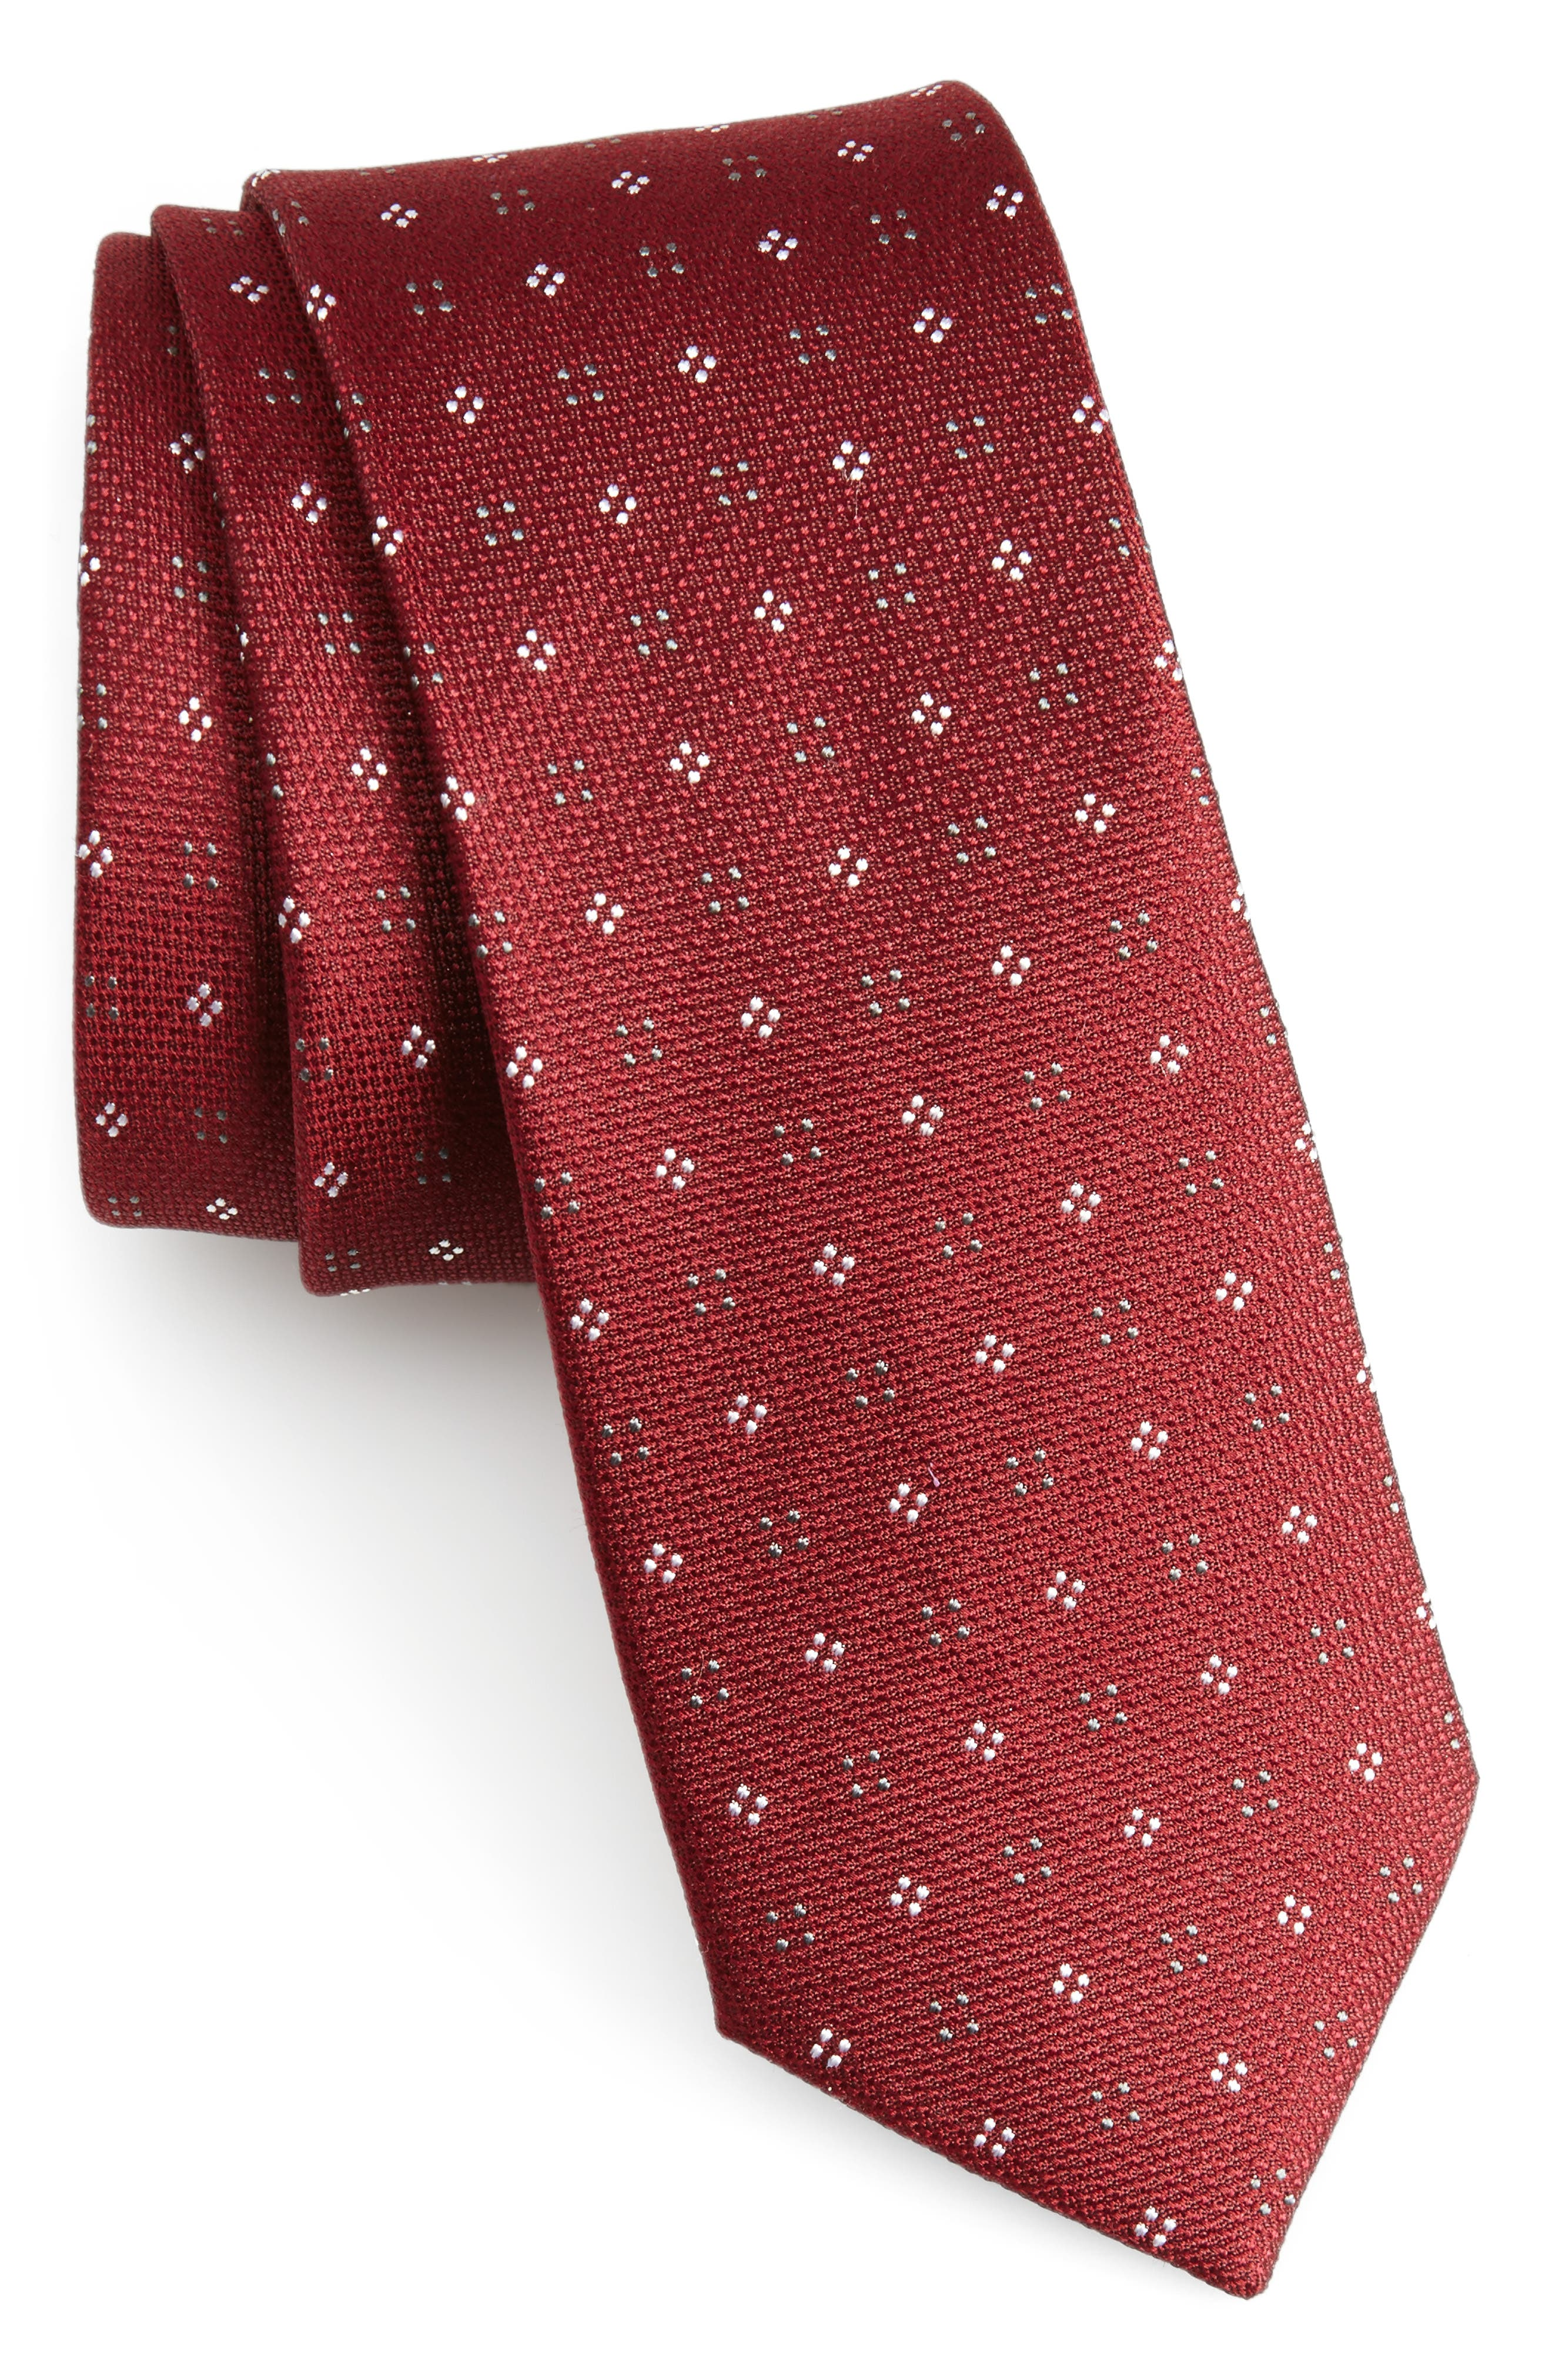 Bond Geos Silk Skinny Tie,                         Main,                         color, Burgundy